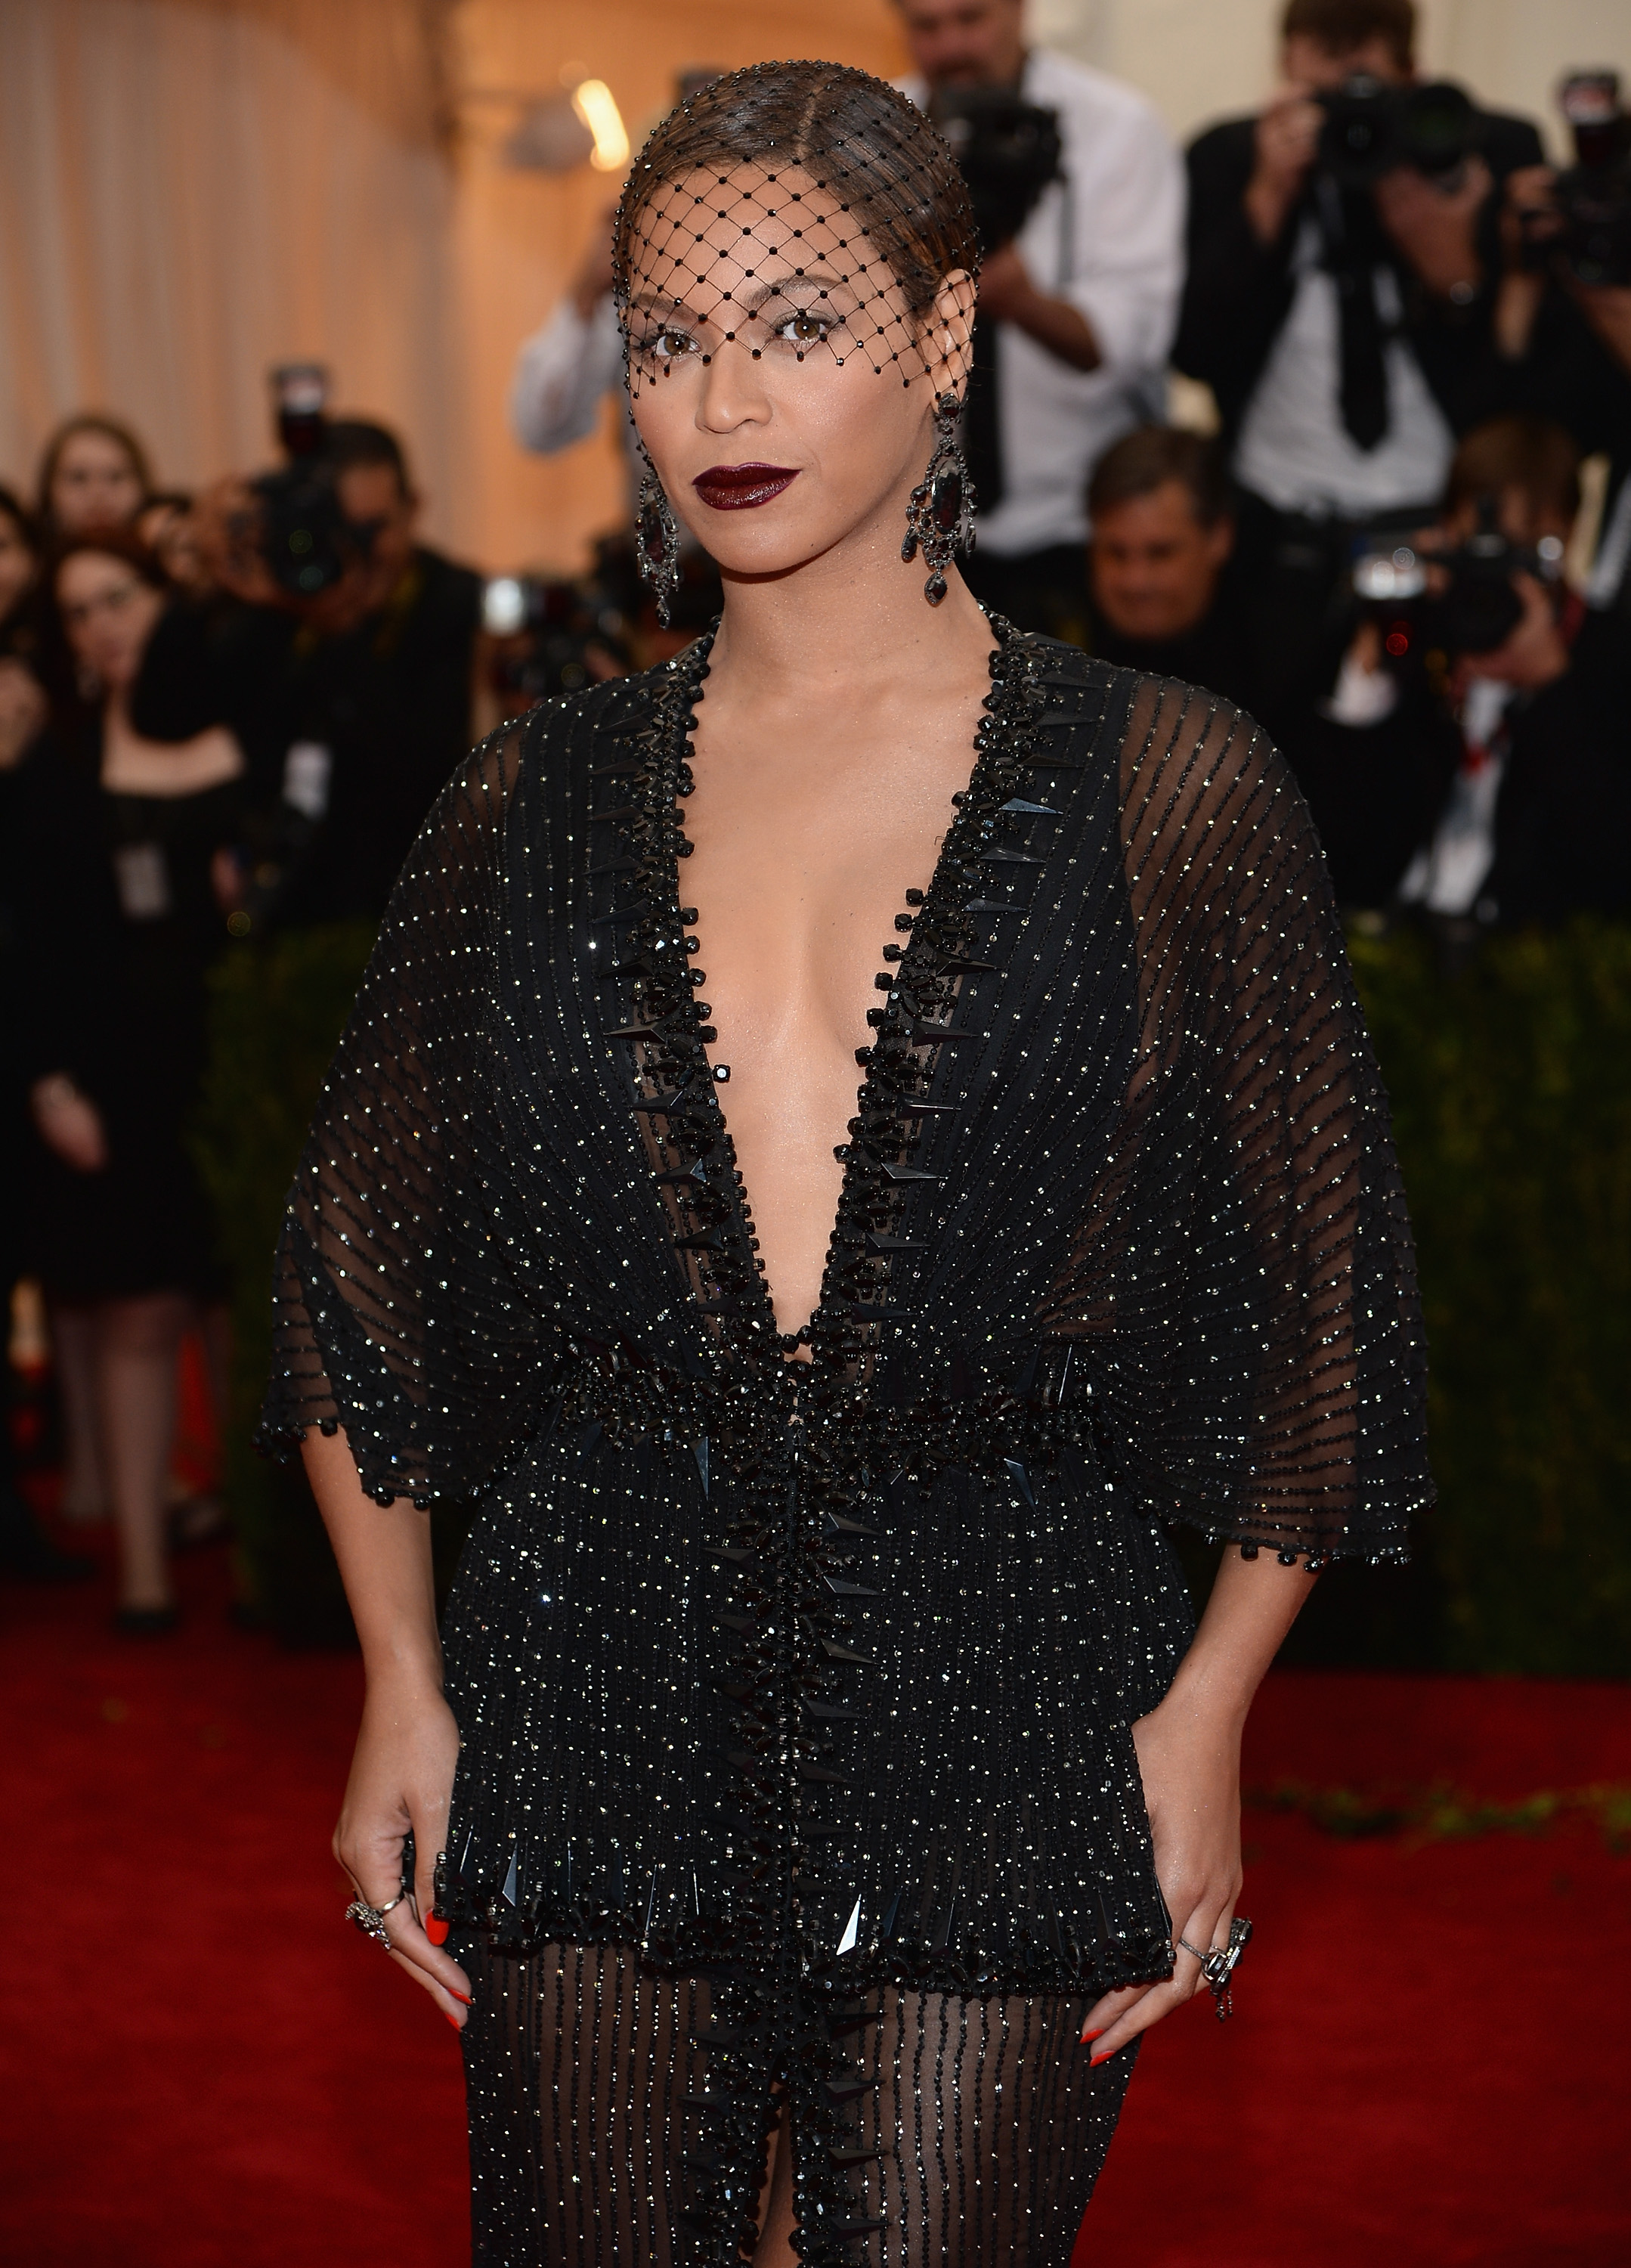 Beyonce attends a Metropolitan Museum of Art Gala in New York on May 5.